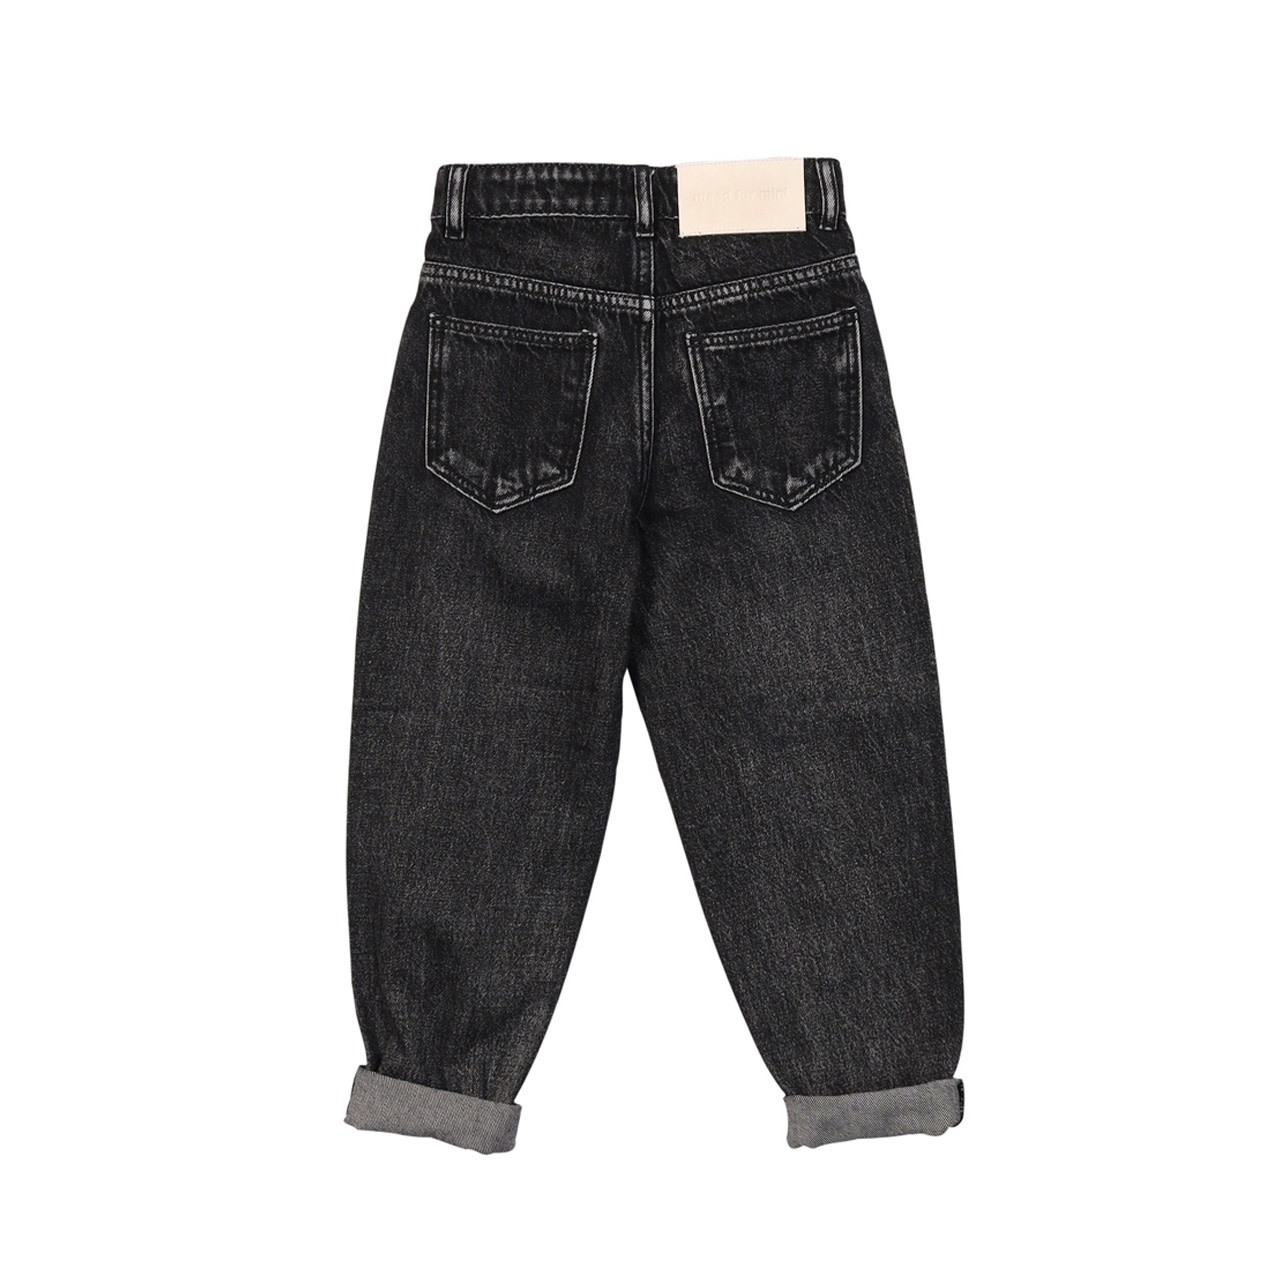 Maed For mini Maed for mini - Jeans black pull